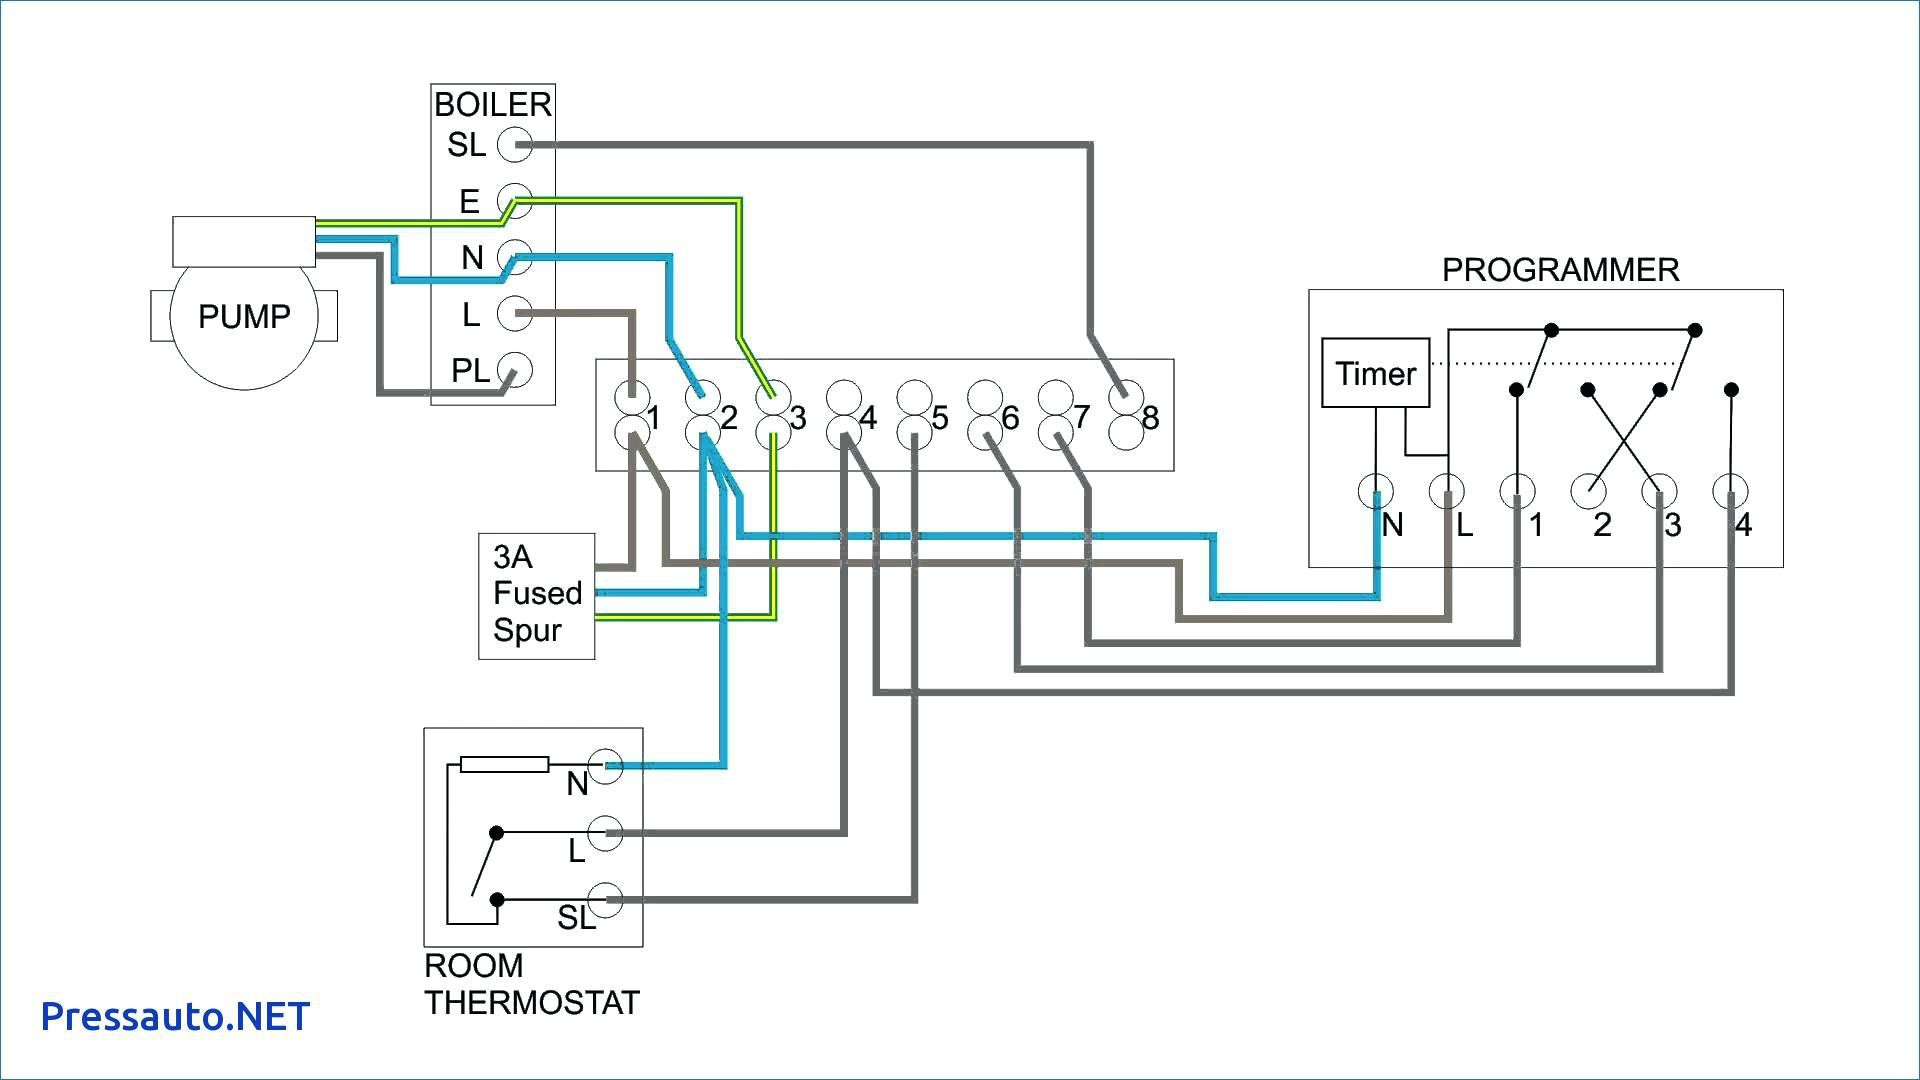 Baseboard Heater Wiring Diagram Coil Trusted Diagrams Taskmaster Electric Heaters Fahrenheat Thermostat Best Of Image